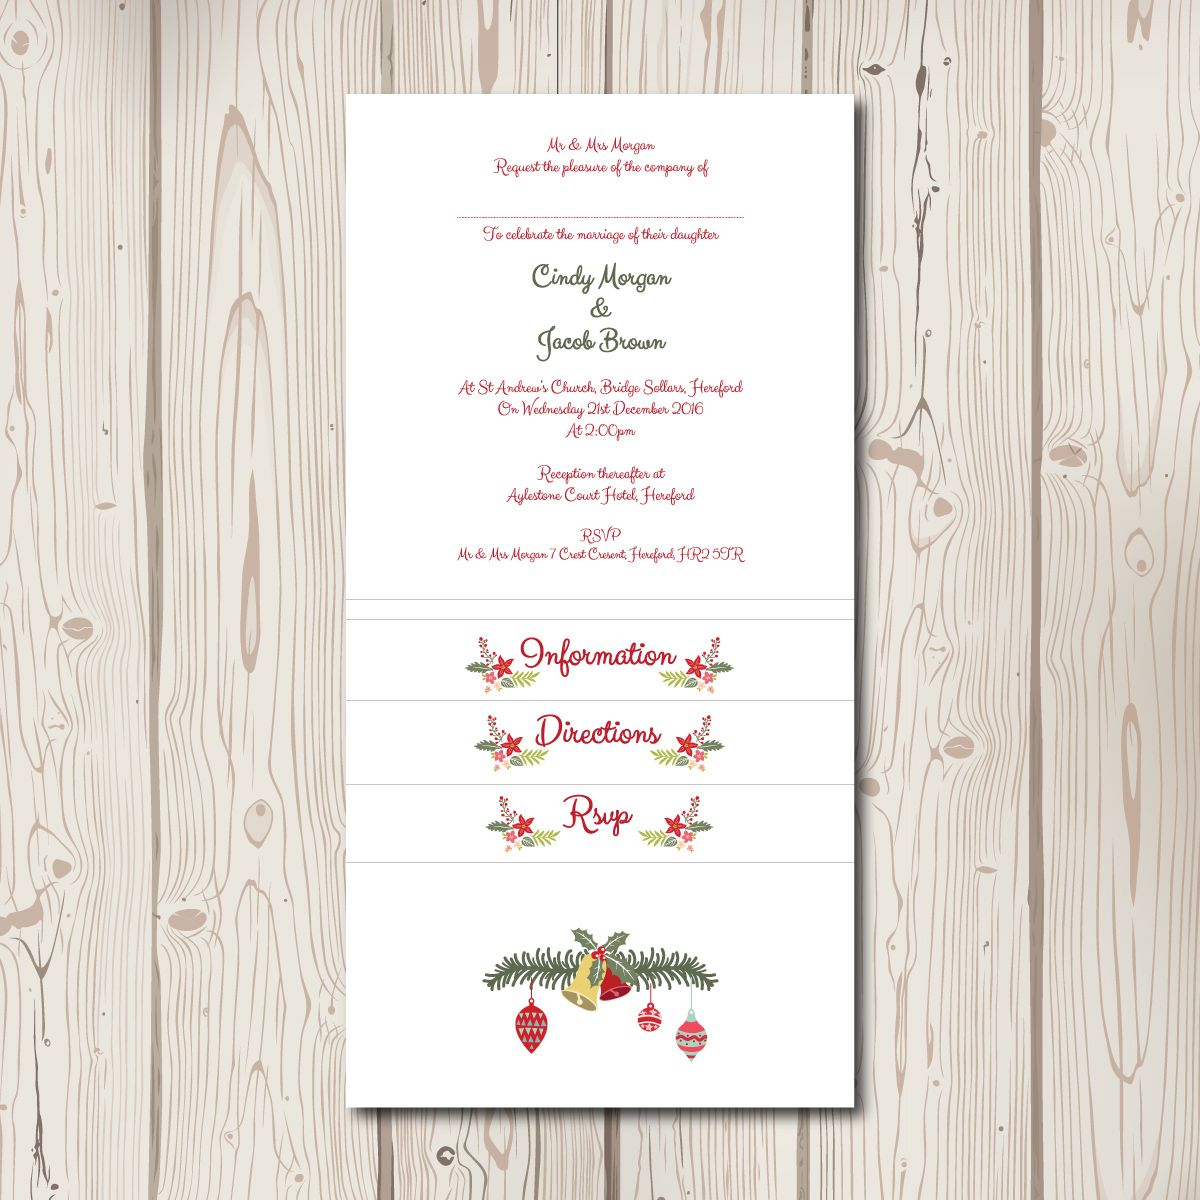 Christmas Pocketfold Wedding Invitations  £2.75–£3.25  This design features a festive, floral design framing your names, with delicate snowflakes, hanging baubles and a decorated stag. Perfect for any Christmas themed wedding.  All stationery is personalised free with your choice of wording and colours. Double sided matching evening invites are available from £1.50 each, ask for more details.  These printed pocketfolds are available for this price on white card, but all graphics can be…